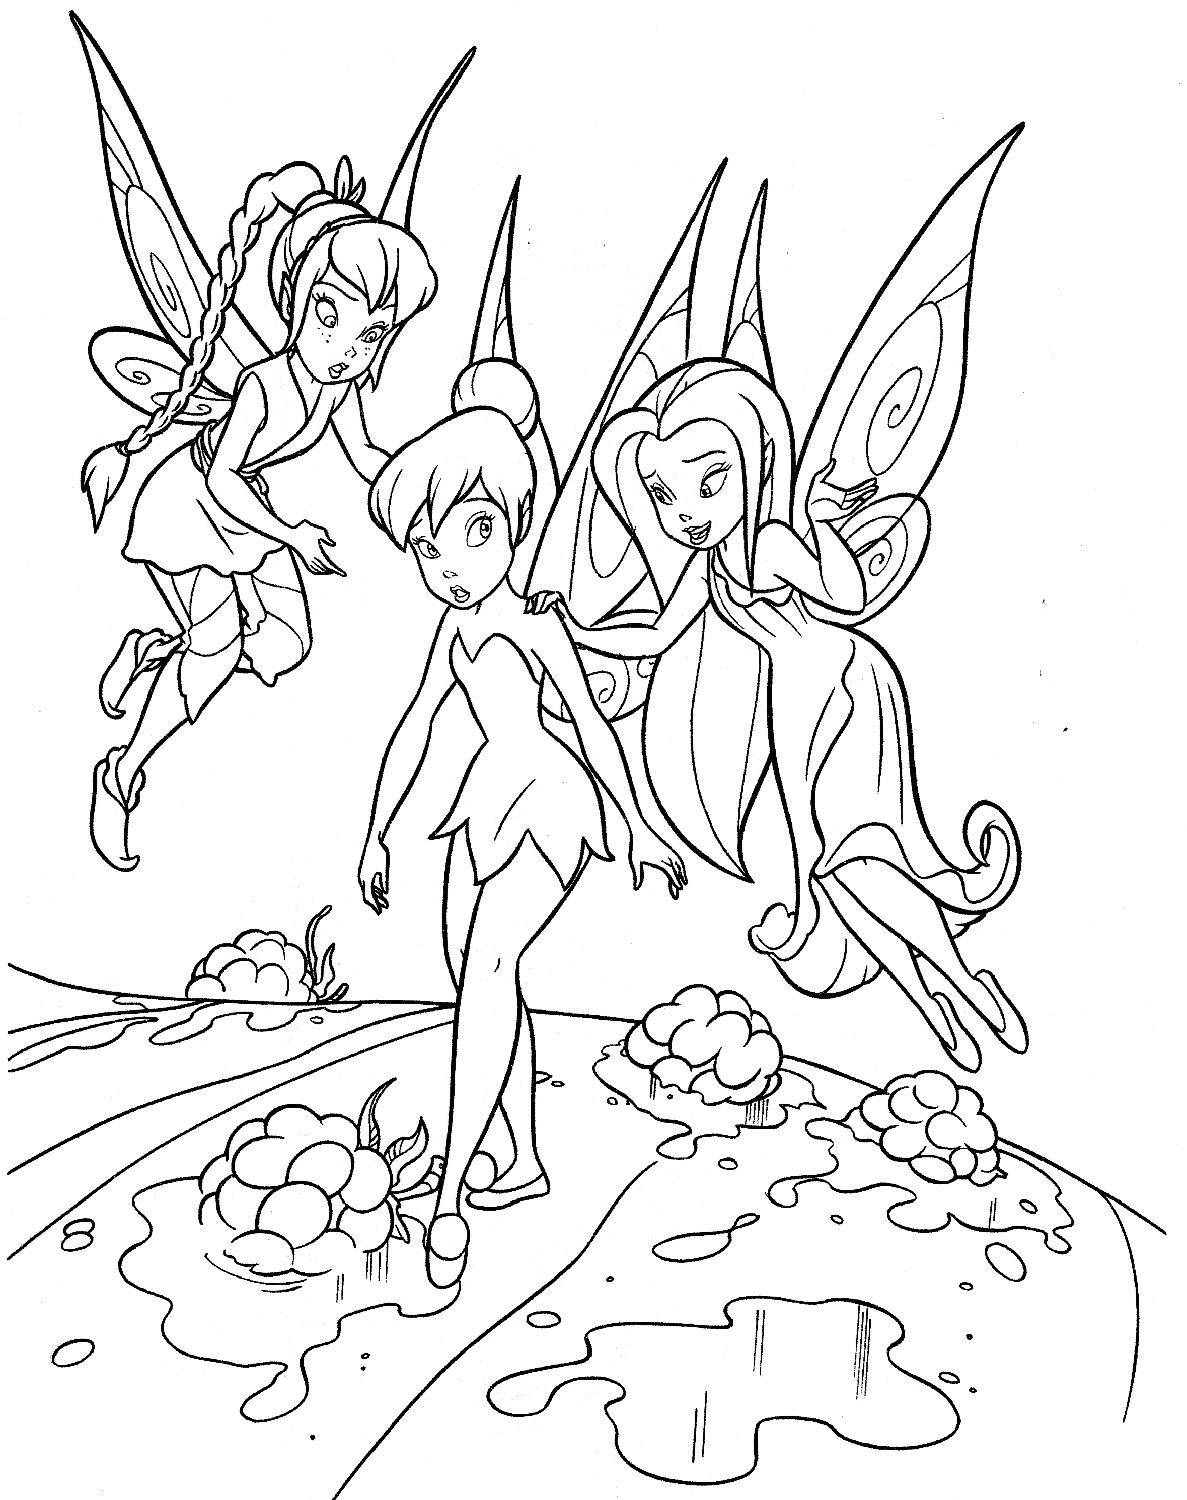 tinkerbell coloring - Tinkerbell Coloring Book